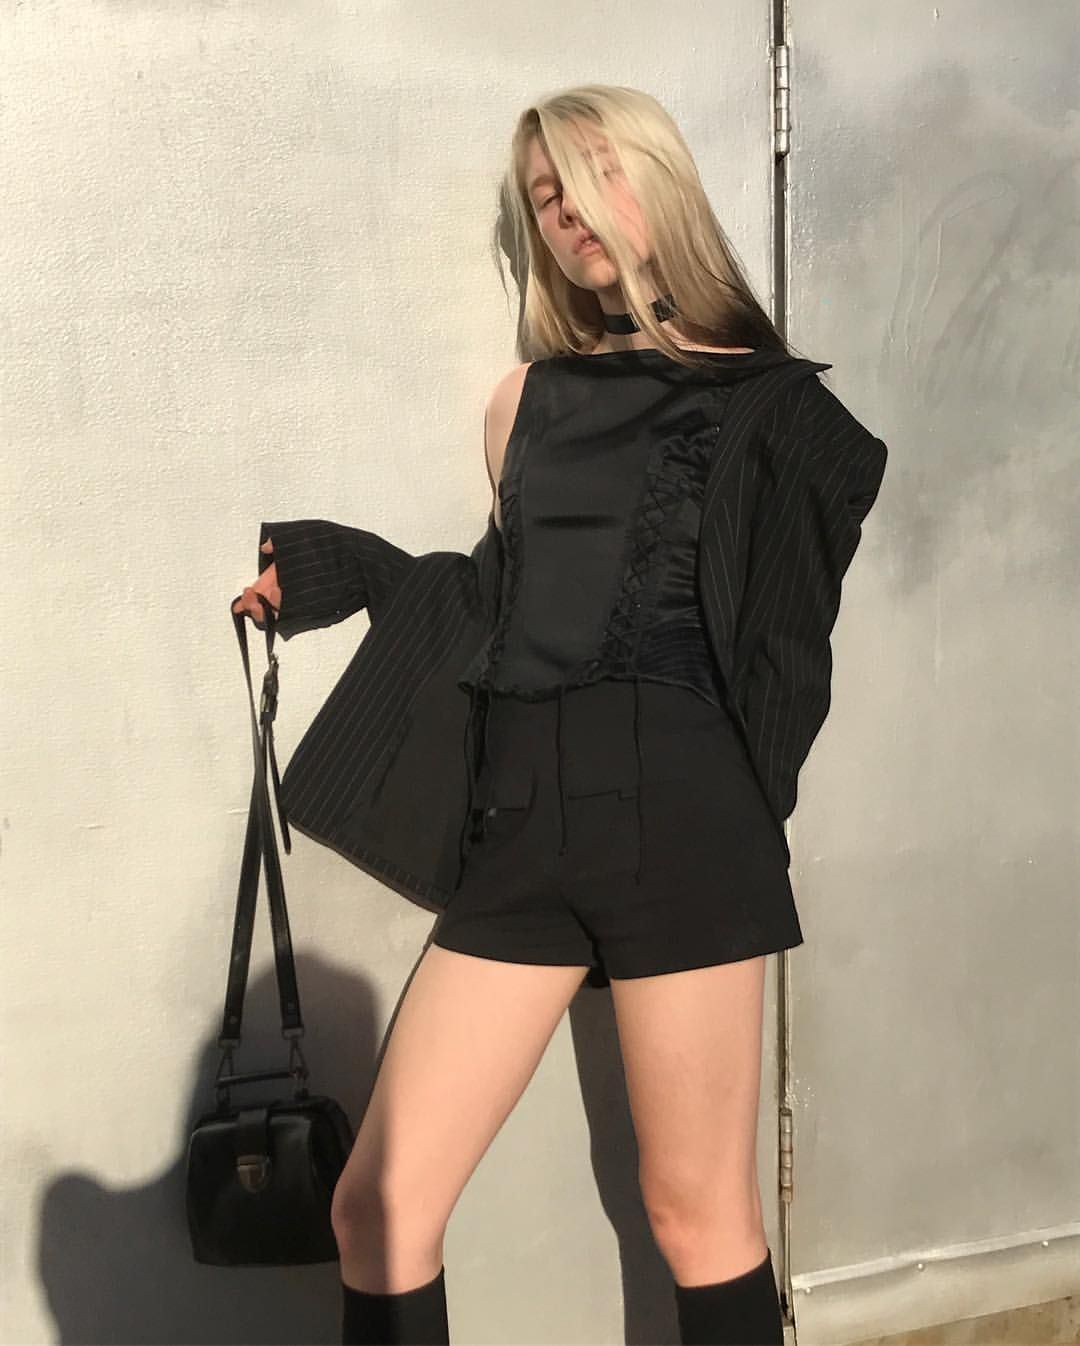 hunter schafer - photo #42